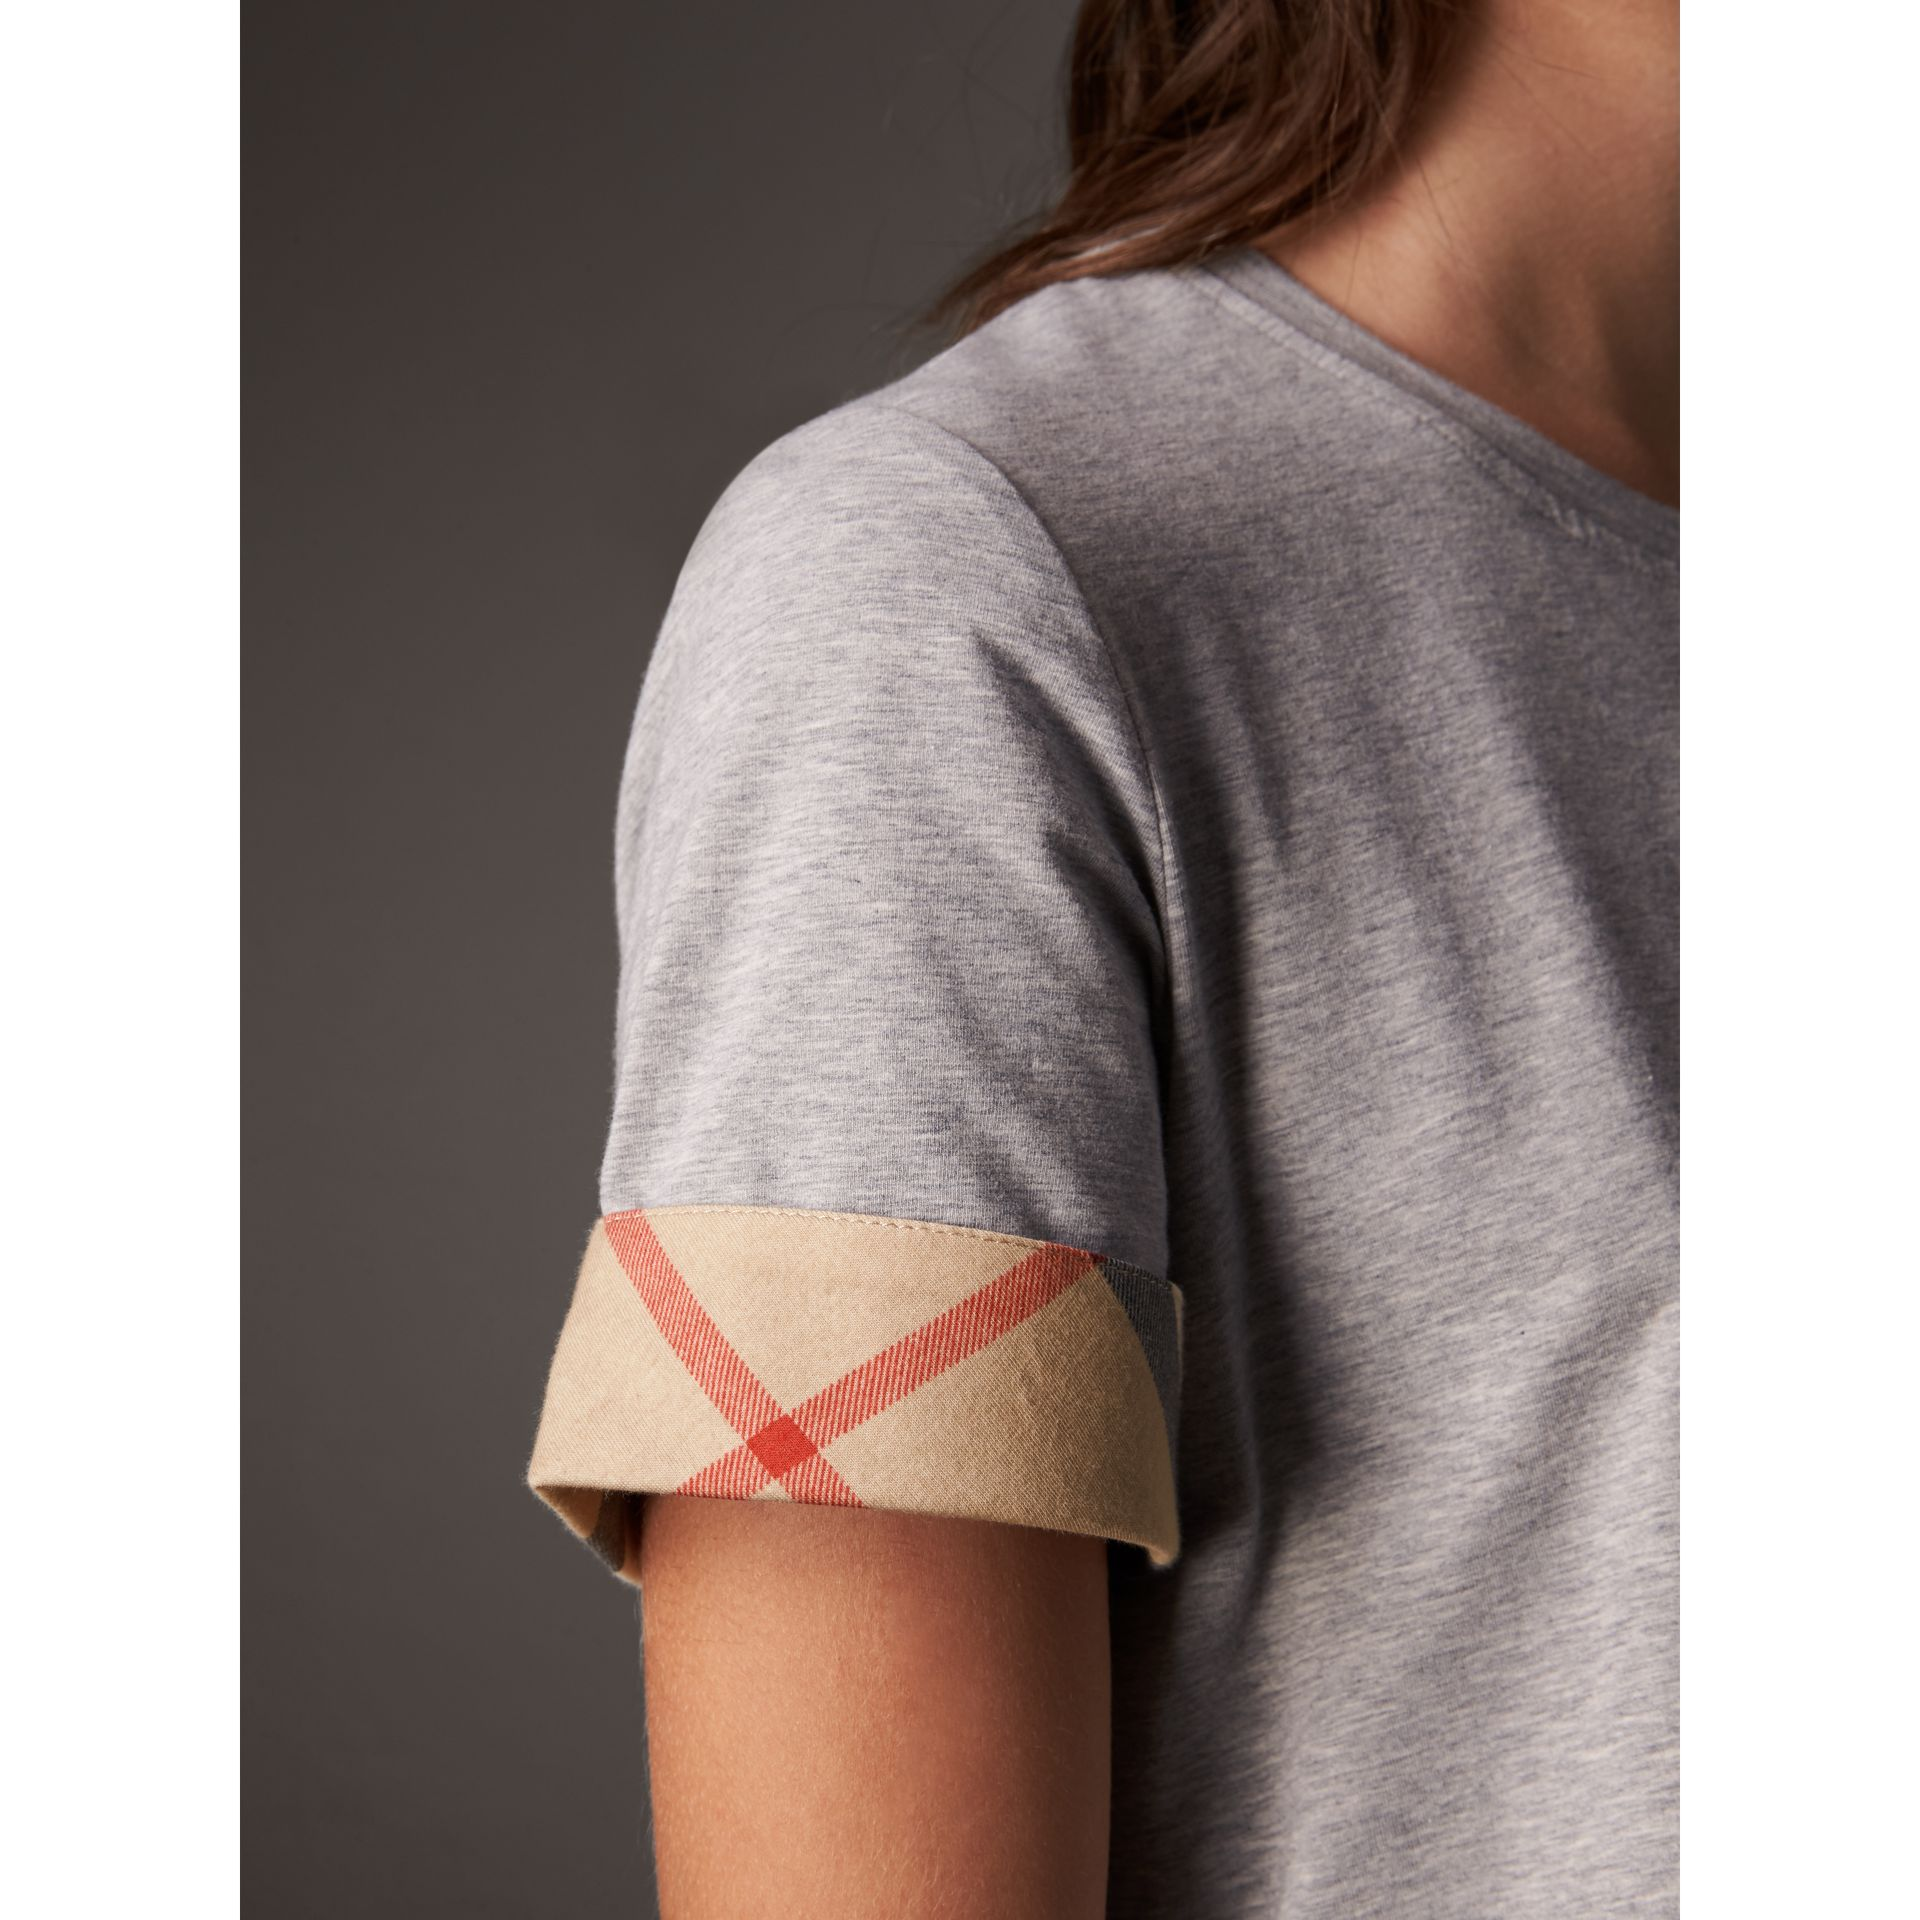 Check Cuff Stretch Cotton T-Shirt in Pale Grey Melange - Women | Burberry Australia - gallery image 5